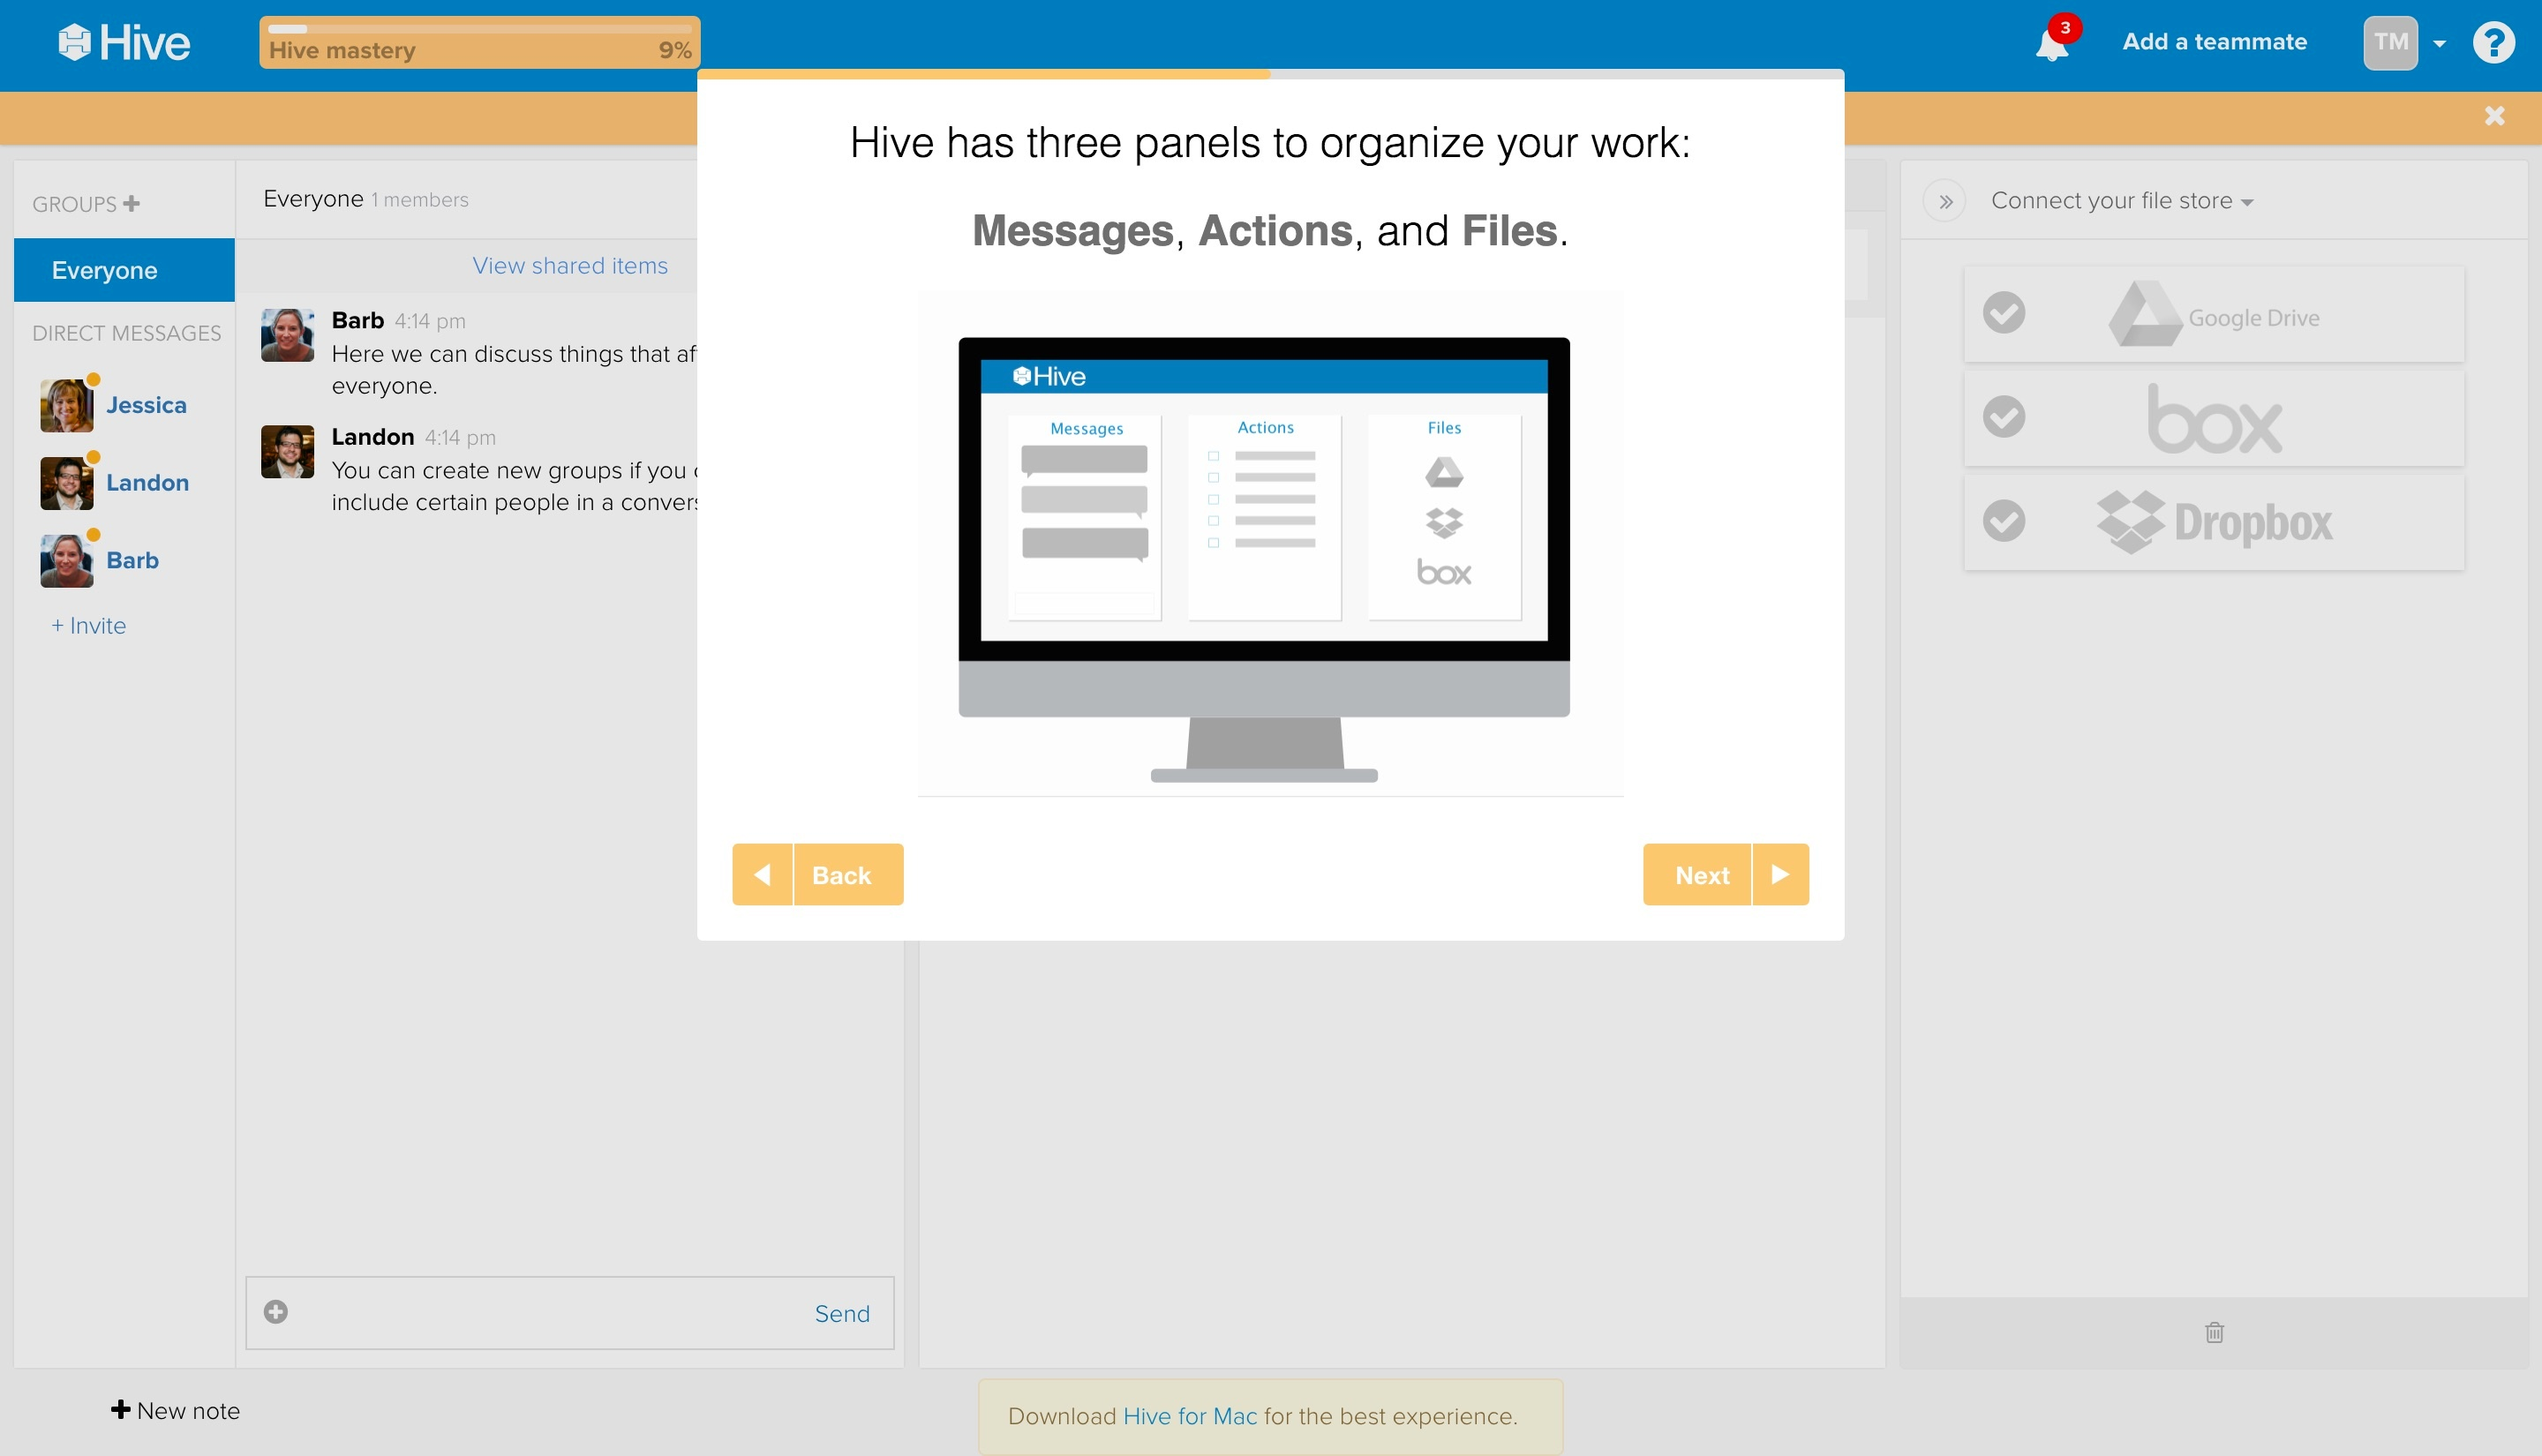 hive-welcome-message-modal-2.jpeg